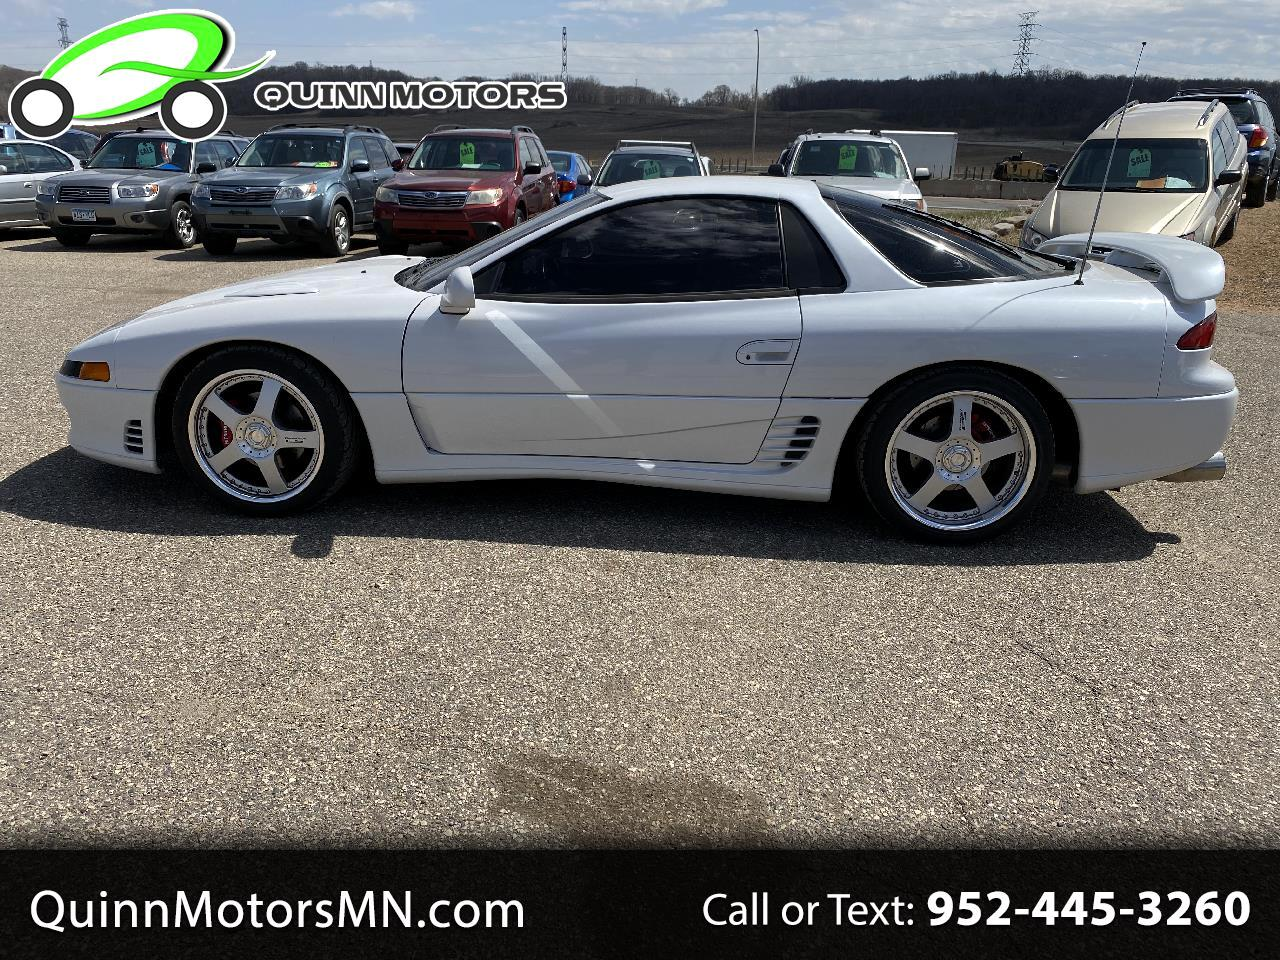 Mitsubishi 3000GT 2dr Coupe VR-4 Twin Turbo 1992